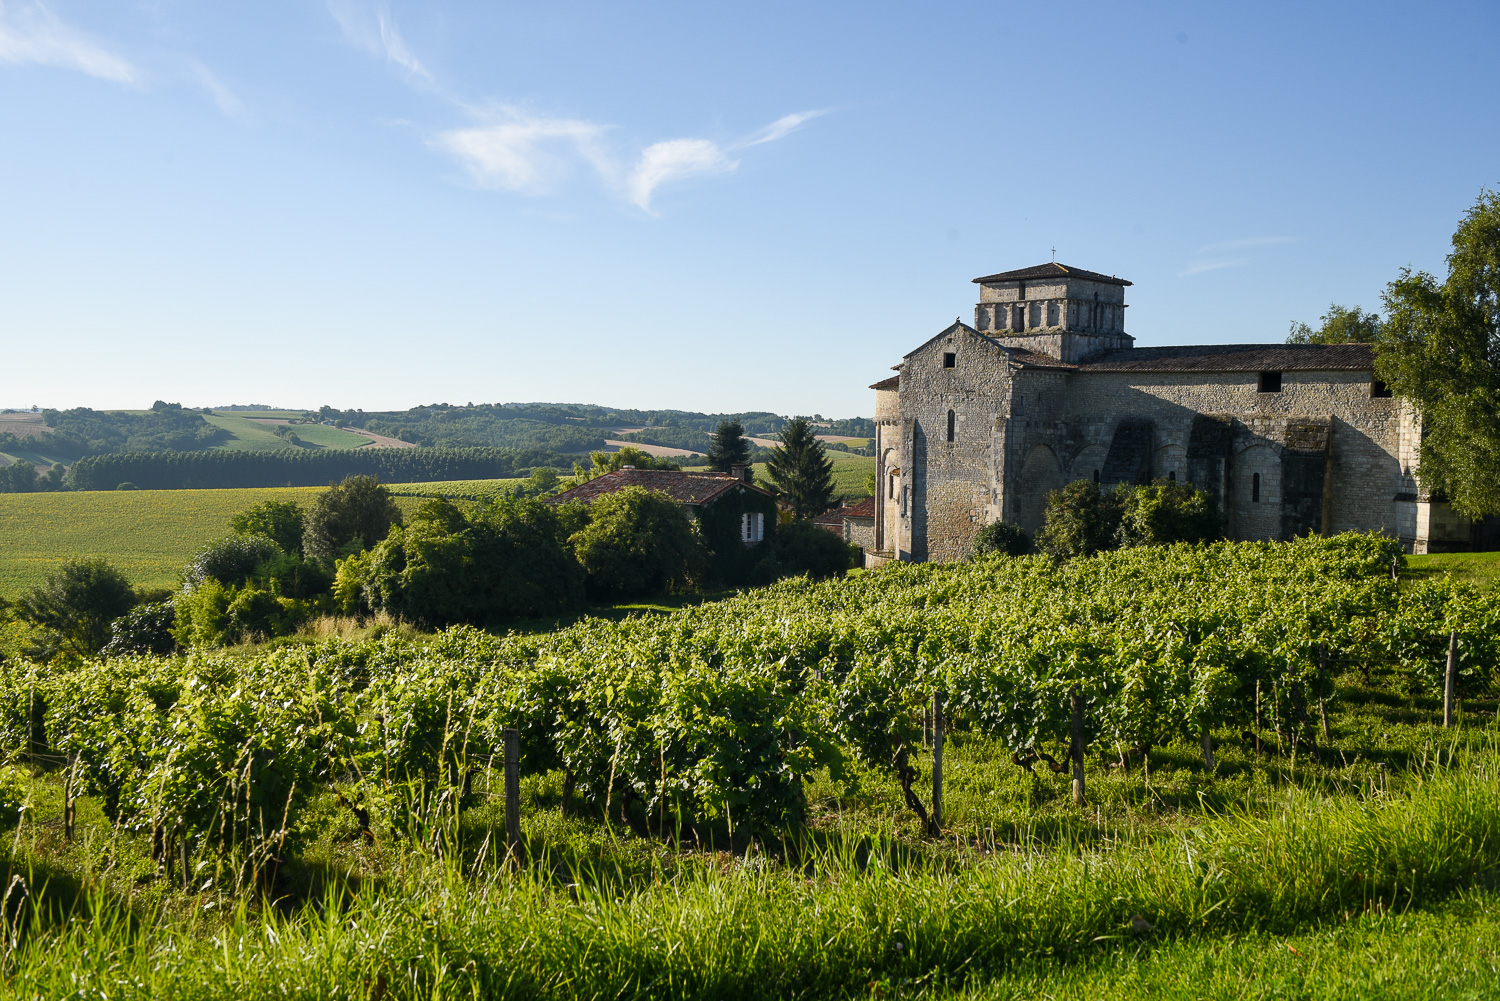 Drive Through The Countryside Of Chae France And You Might Just Stumble Upon This Quaint Little Village Surrounded By Vineyards Fields